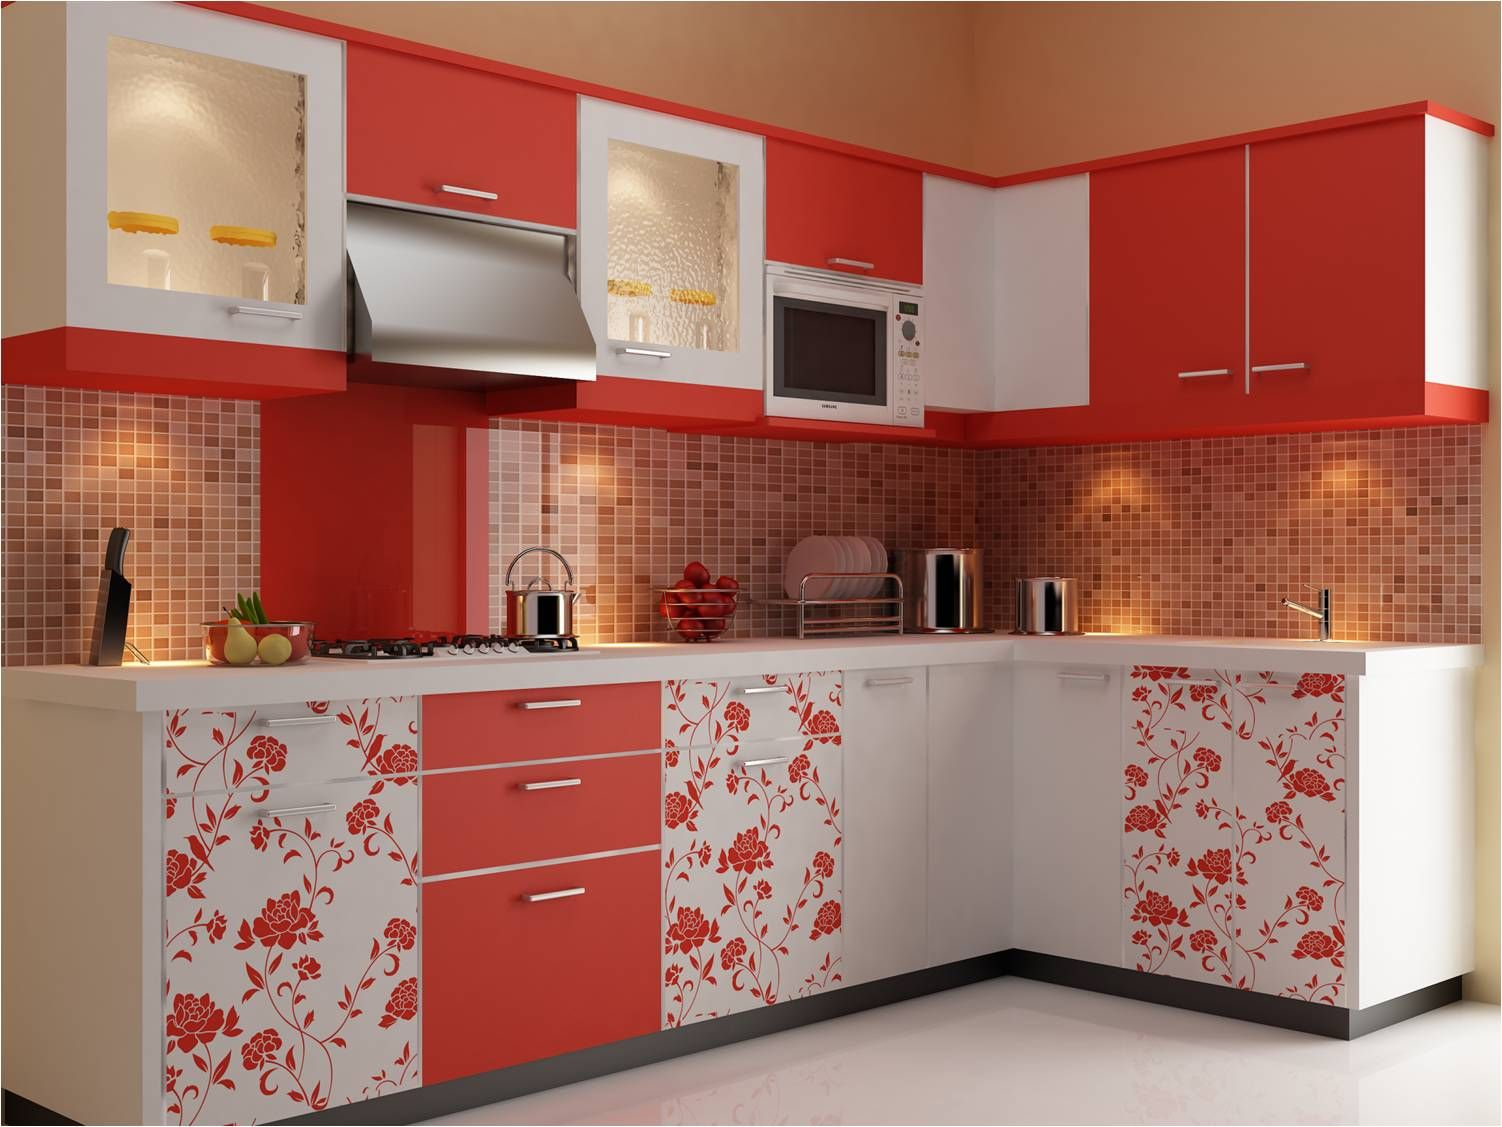 Best Tambaram Modular Kitchen Images On Pinterest Kitchen